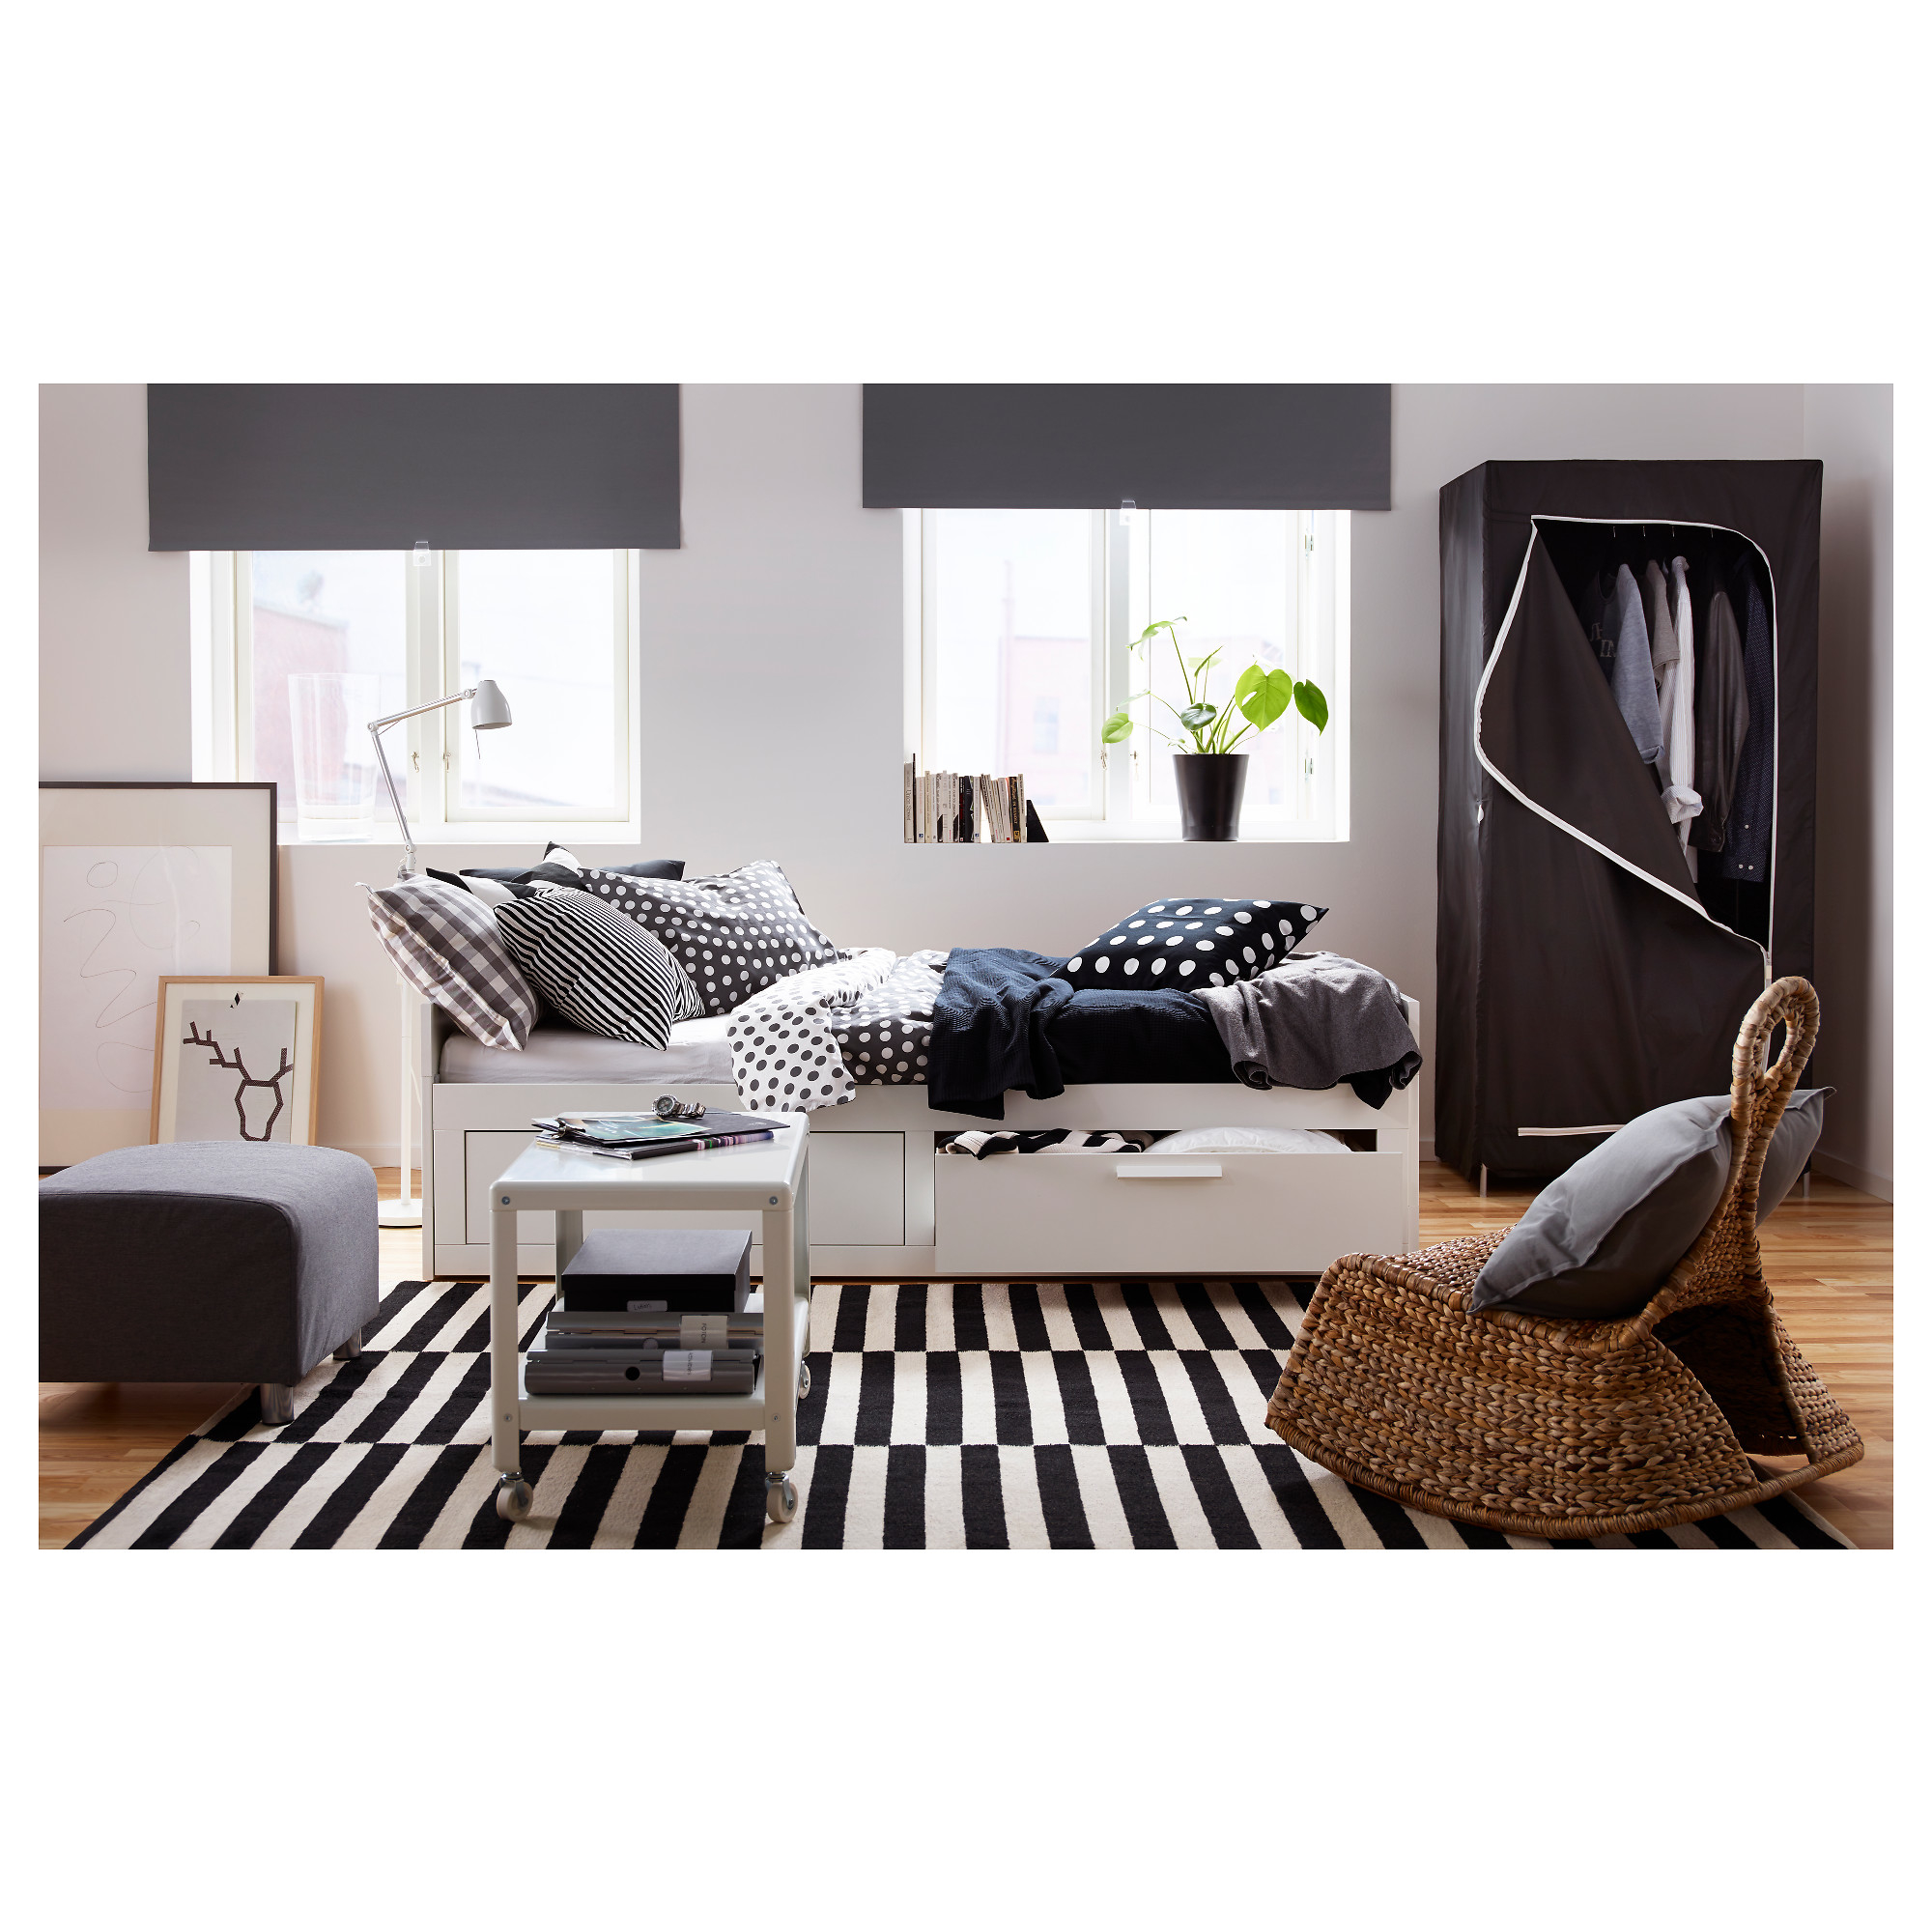 Extraordinary brimnes daybed for small bedroom ideas with ikea brimnes daybed